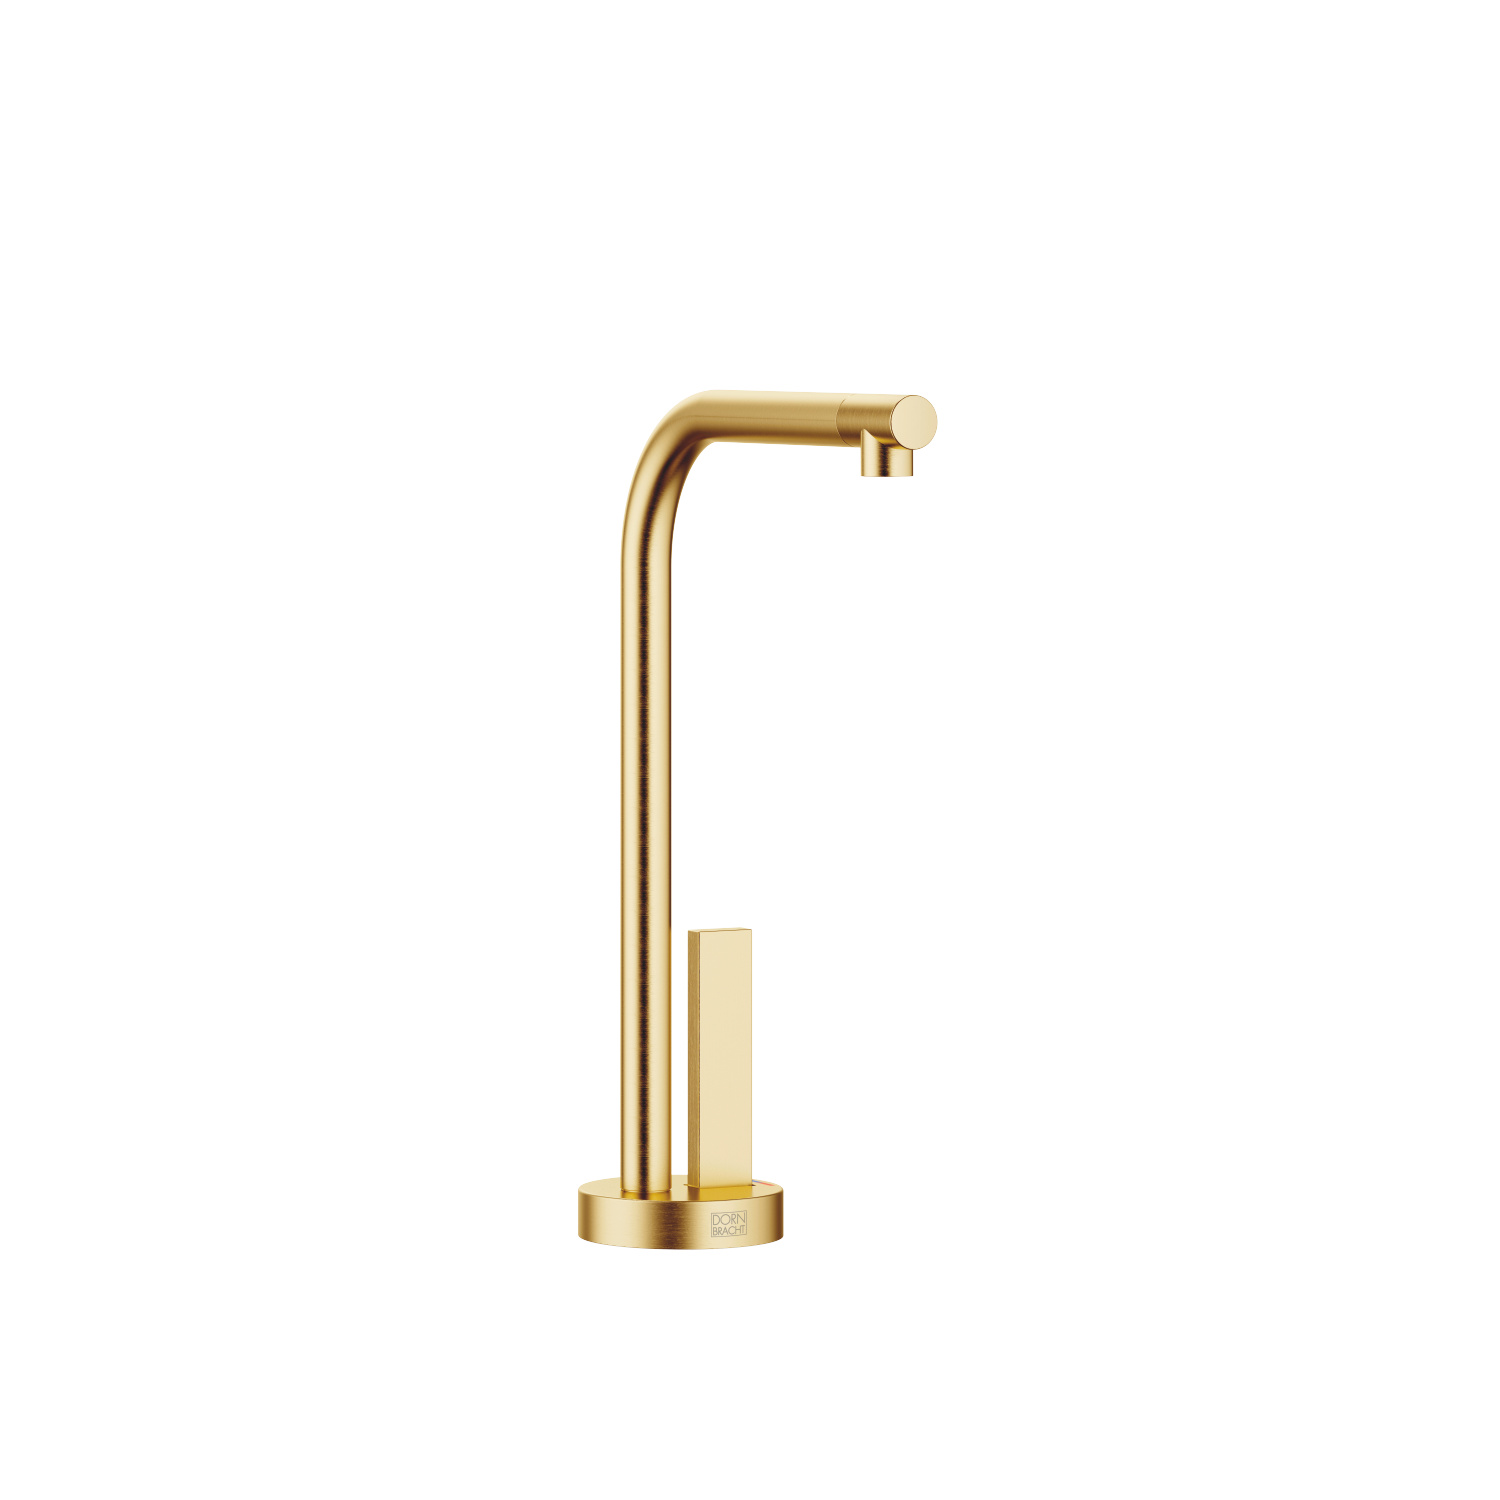 HOT & COLD WATER DISPENSER - brushed Durabrass - 17 861 790-28